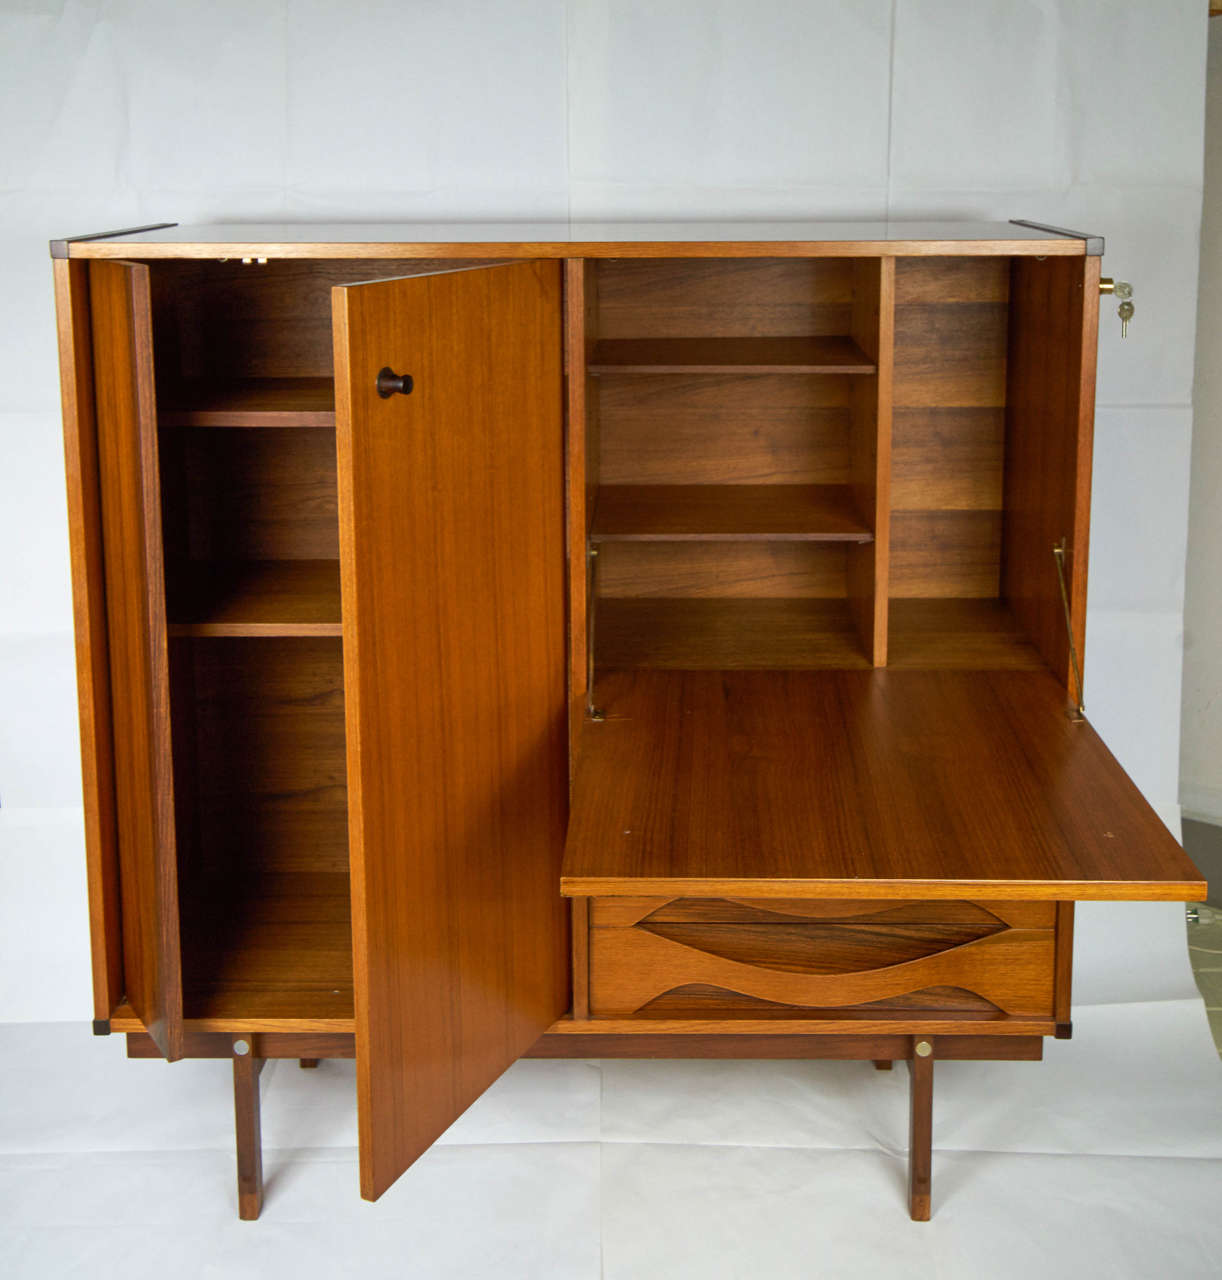 Italian 1950s teak and rosewood cabinet for sale at 1stdibs for Italian cabinets